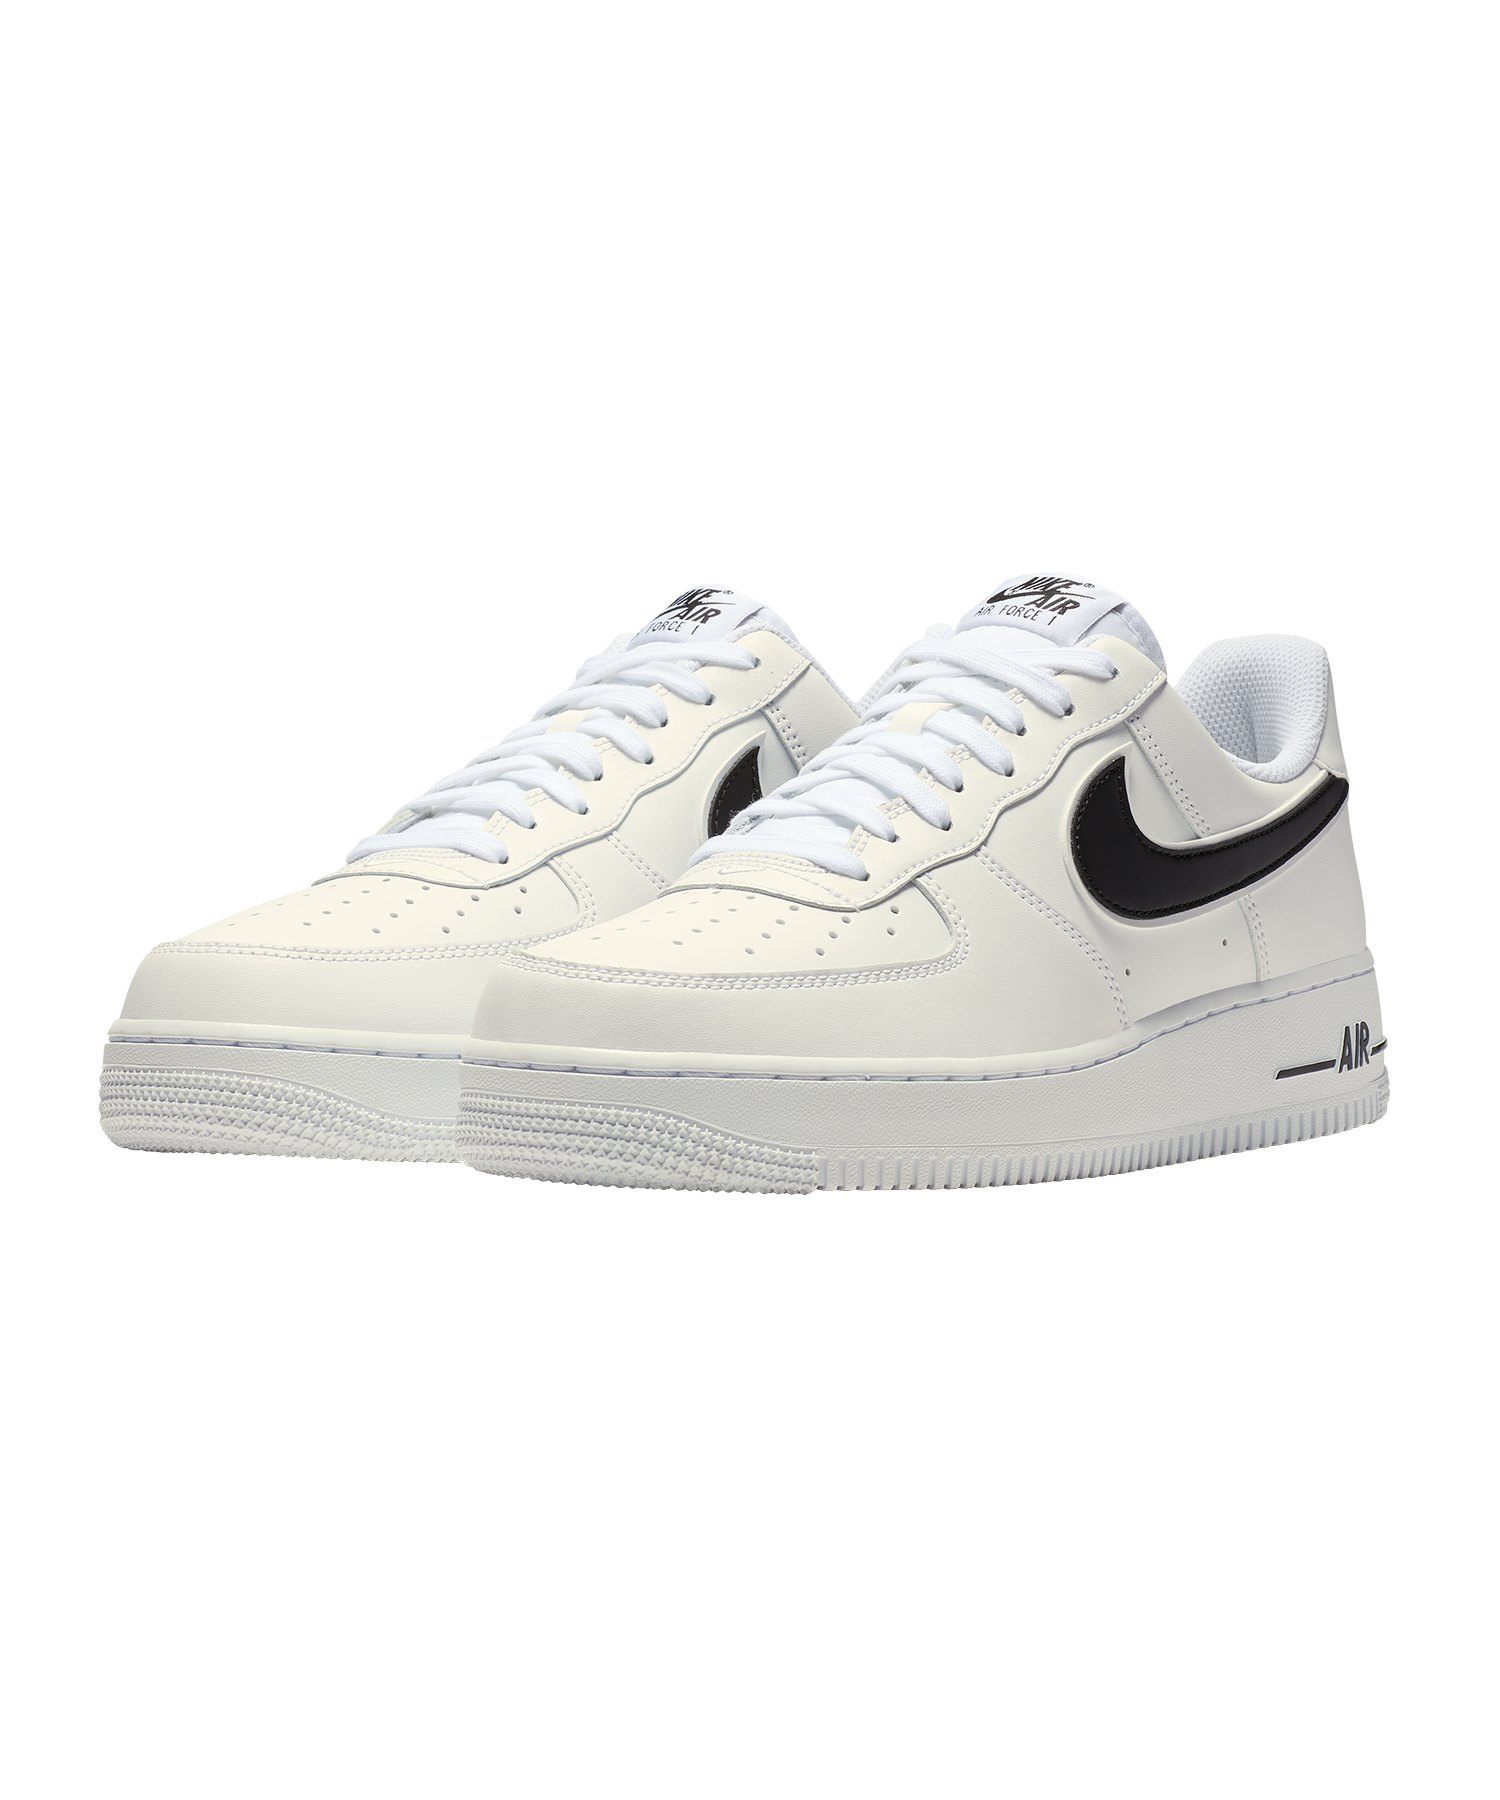 nike air force 1 39 07 sneaker weiss schwarz f101. Black Bedroom Furniture Sets. Home Design Ideas